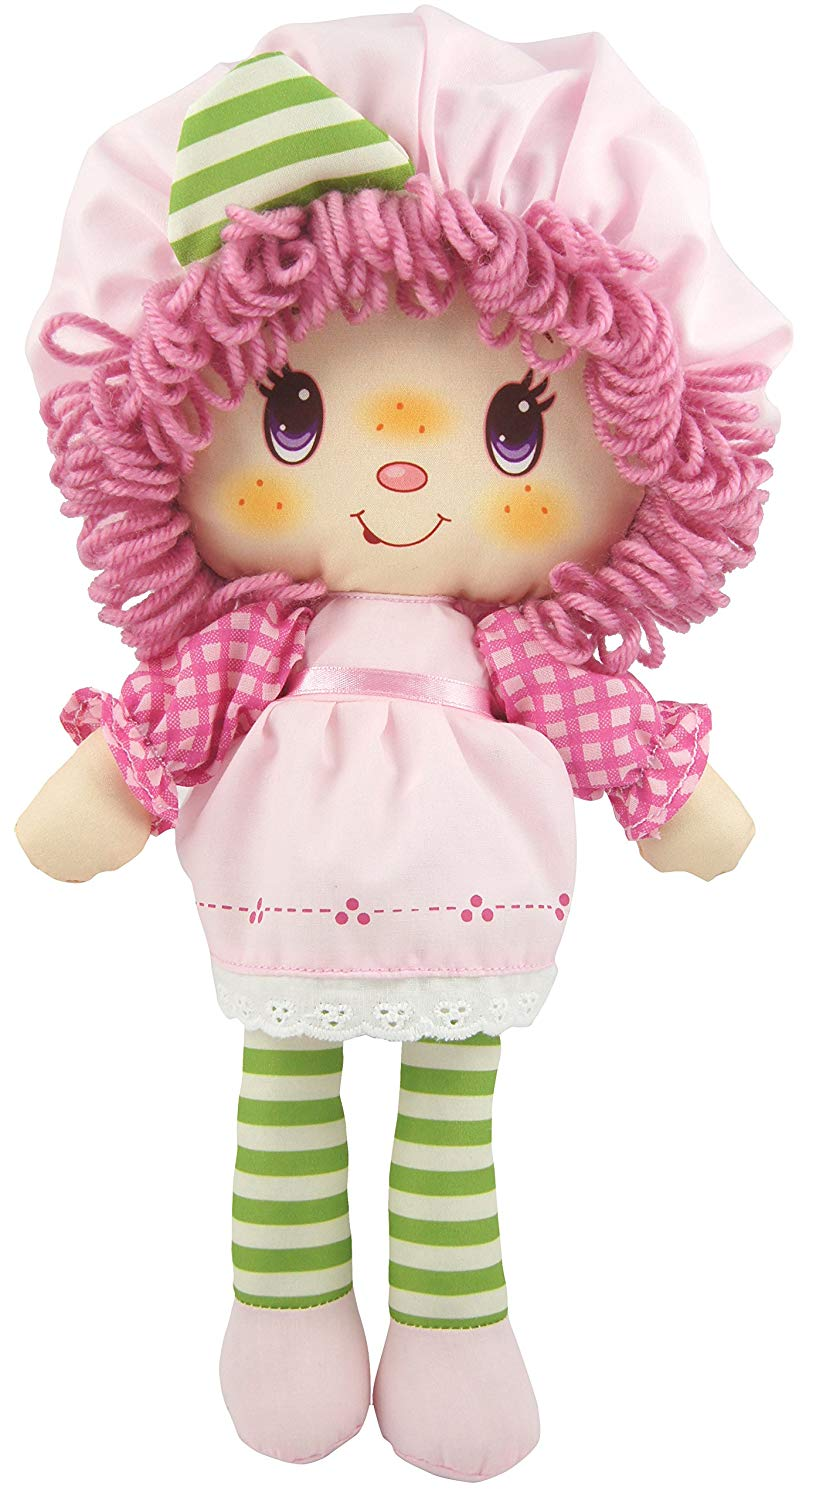 Asmokids – Cloth Doll framboise – Charlotte Foam Strawberry, kkcfsftr